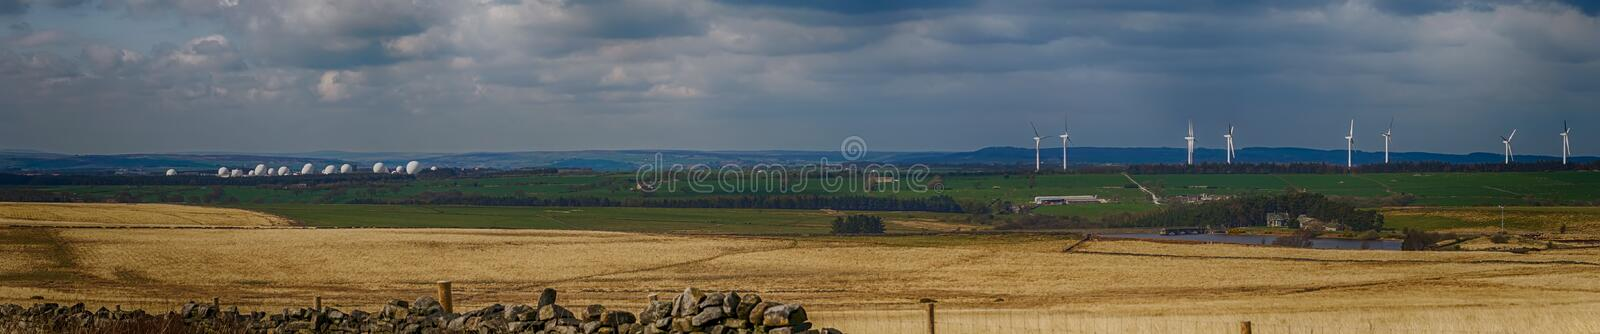 RAF Menwith Hill, Wind farm and Scargill Reservoir on the North Yorkshire Dales. England, United Kingdom royalty free stock image